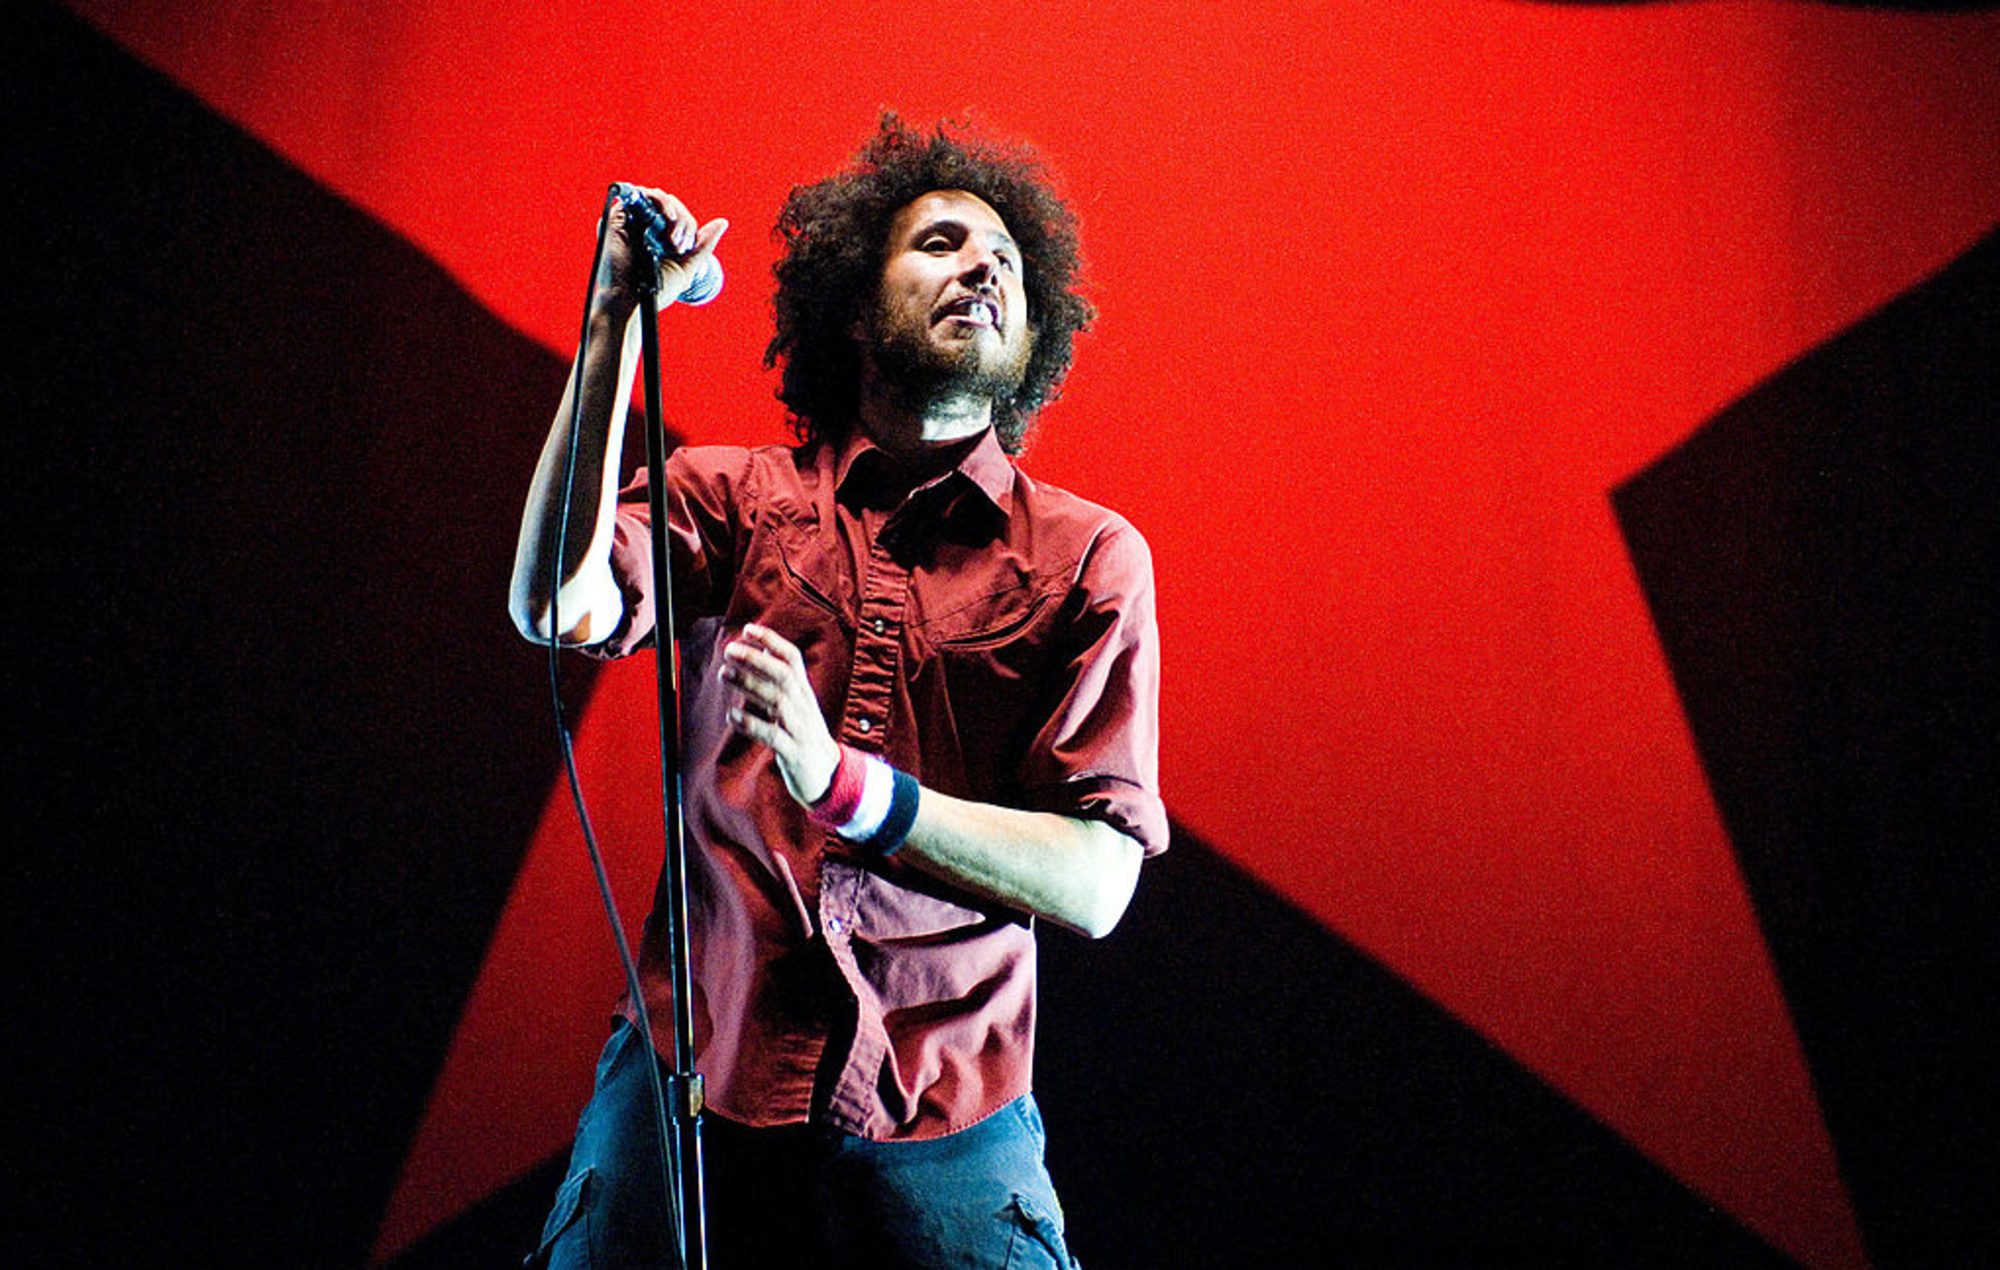 Rage Against the Machine raise over $3 million for charity while combating ticket scalpers